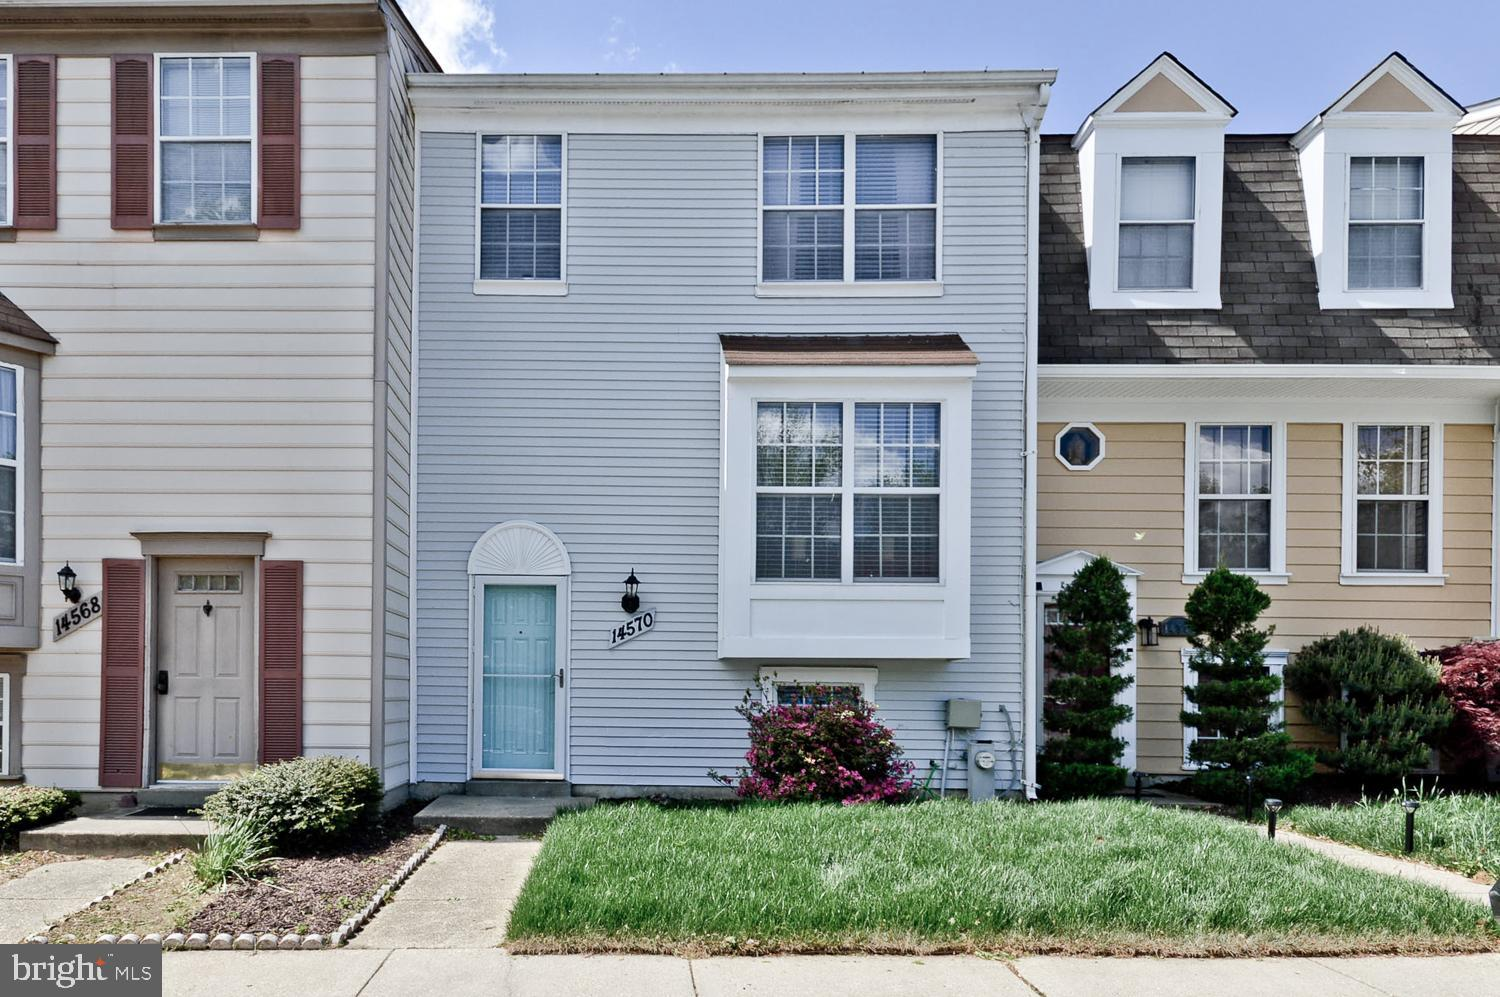 QUESTION: WHERE CAN YOU FIND A 4 BEDROOM, 3 FULL BATH, 1 HALF BATH  3 LEVEL TOWNHOUSE WITH A FIREPLA